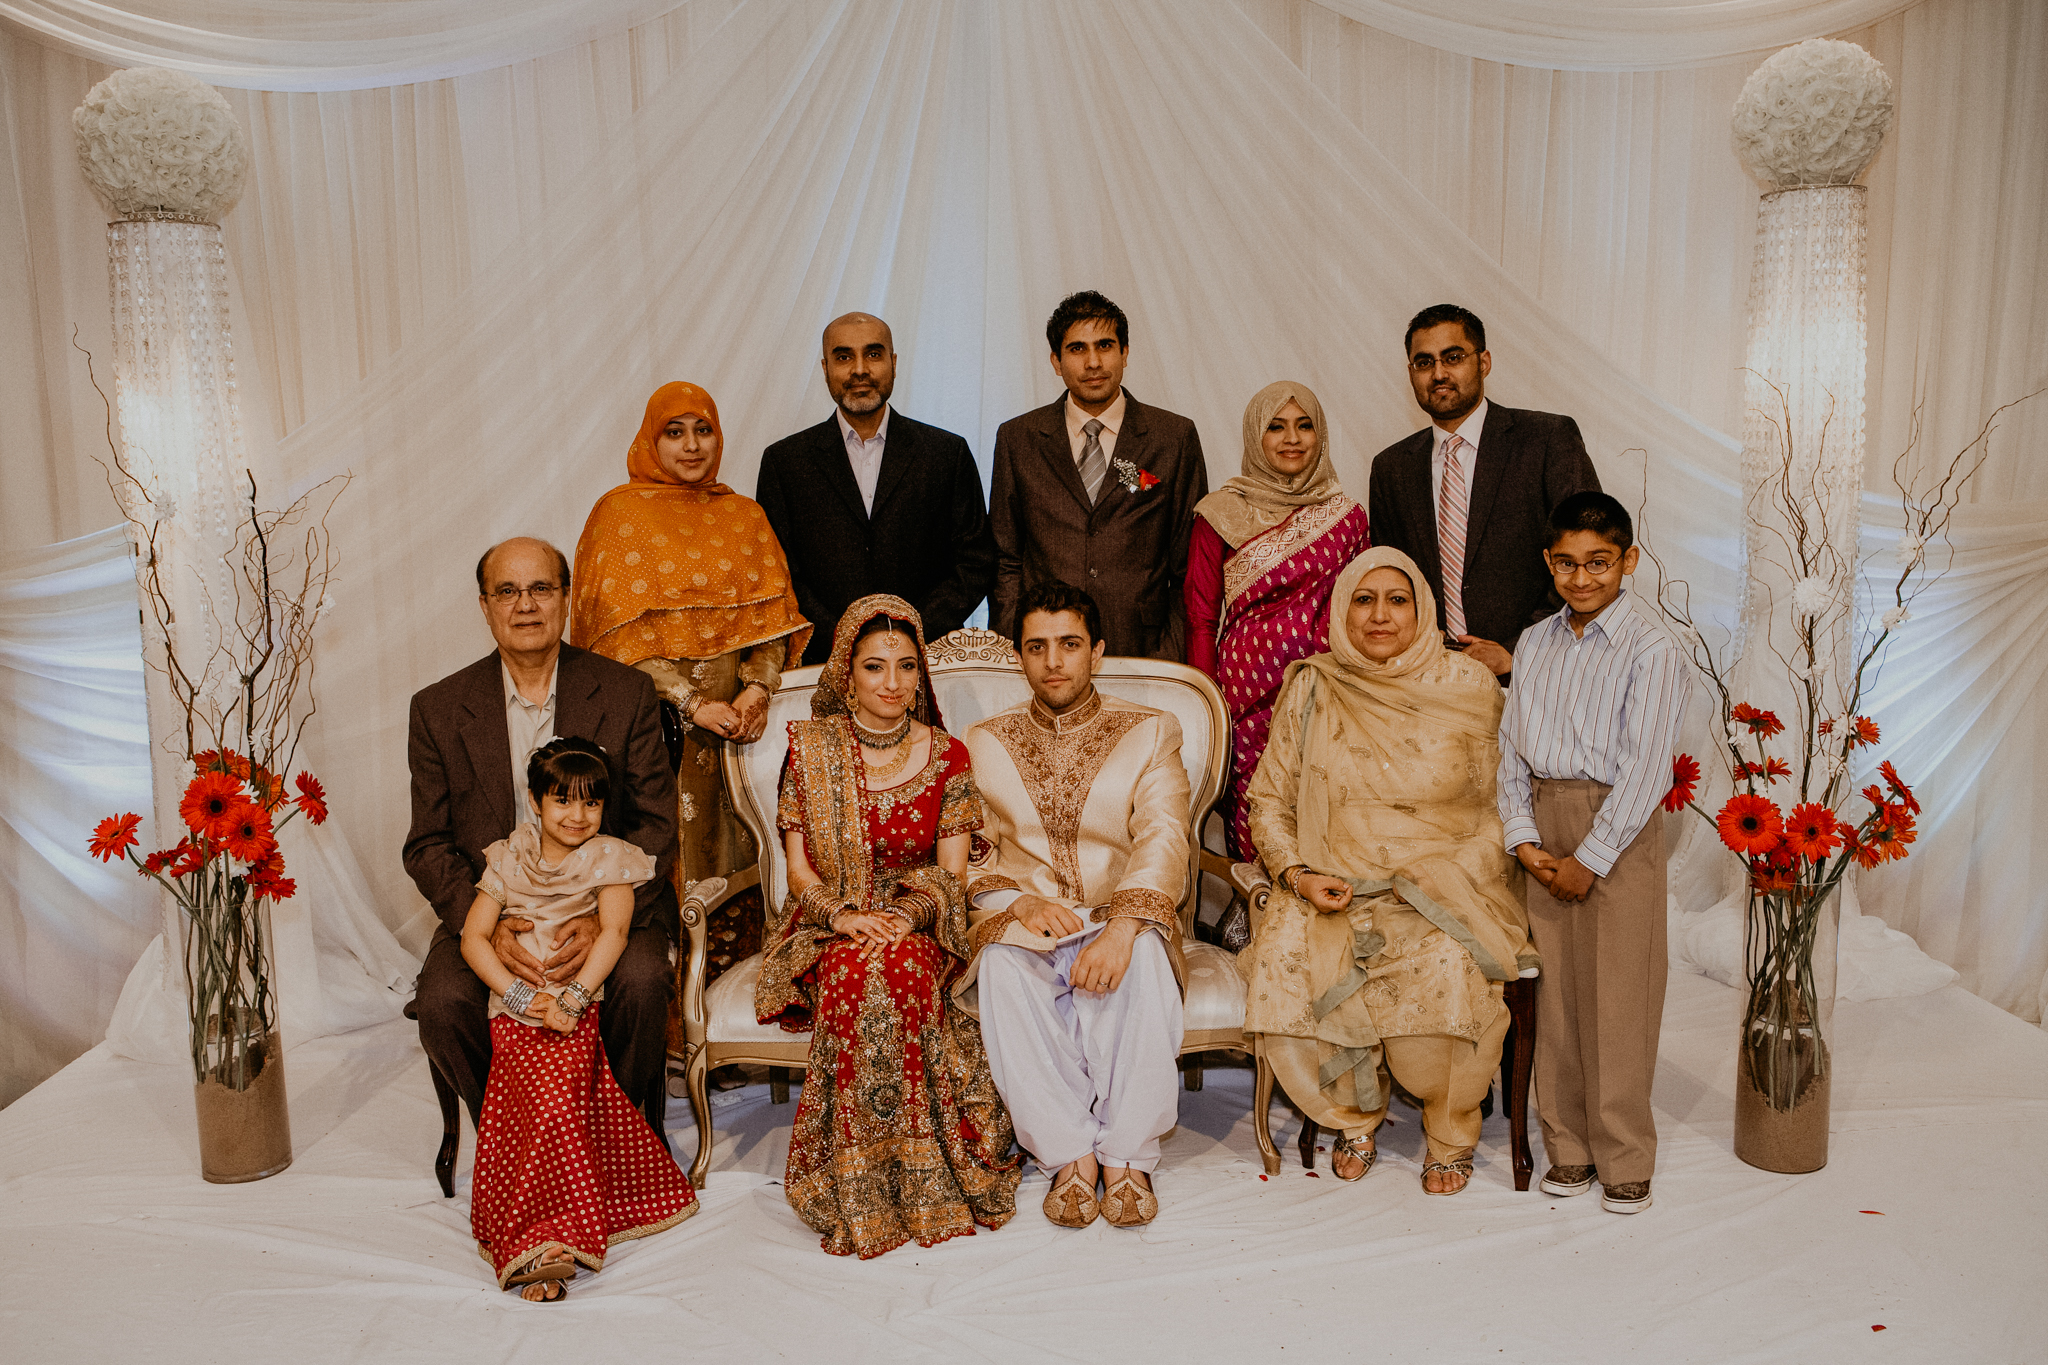 Mehndi family photo Indian wedding photograph MN